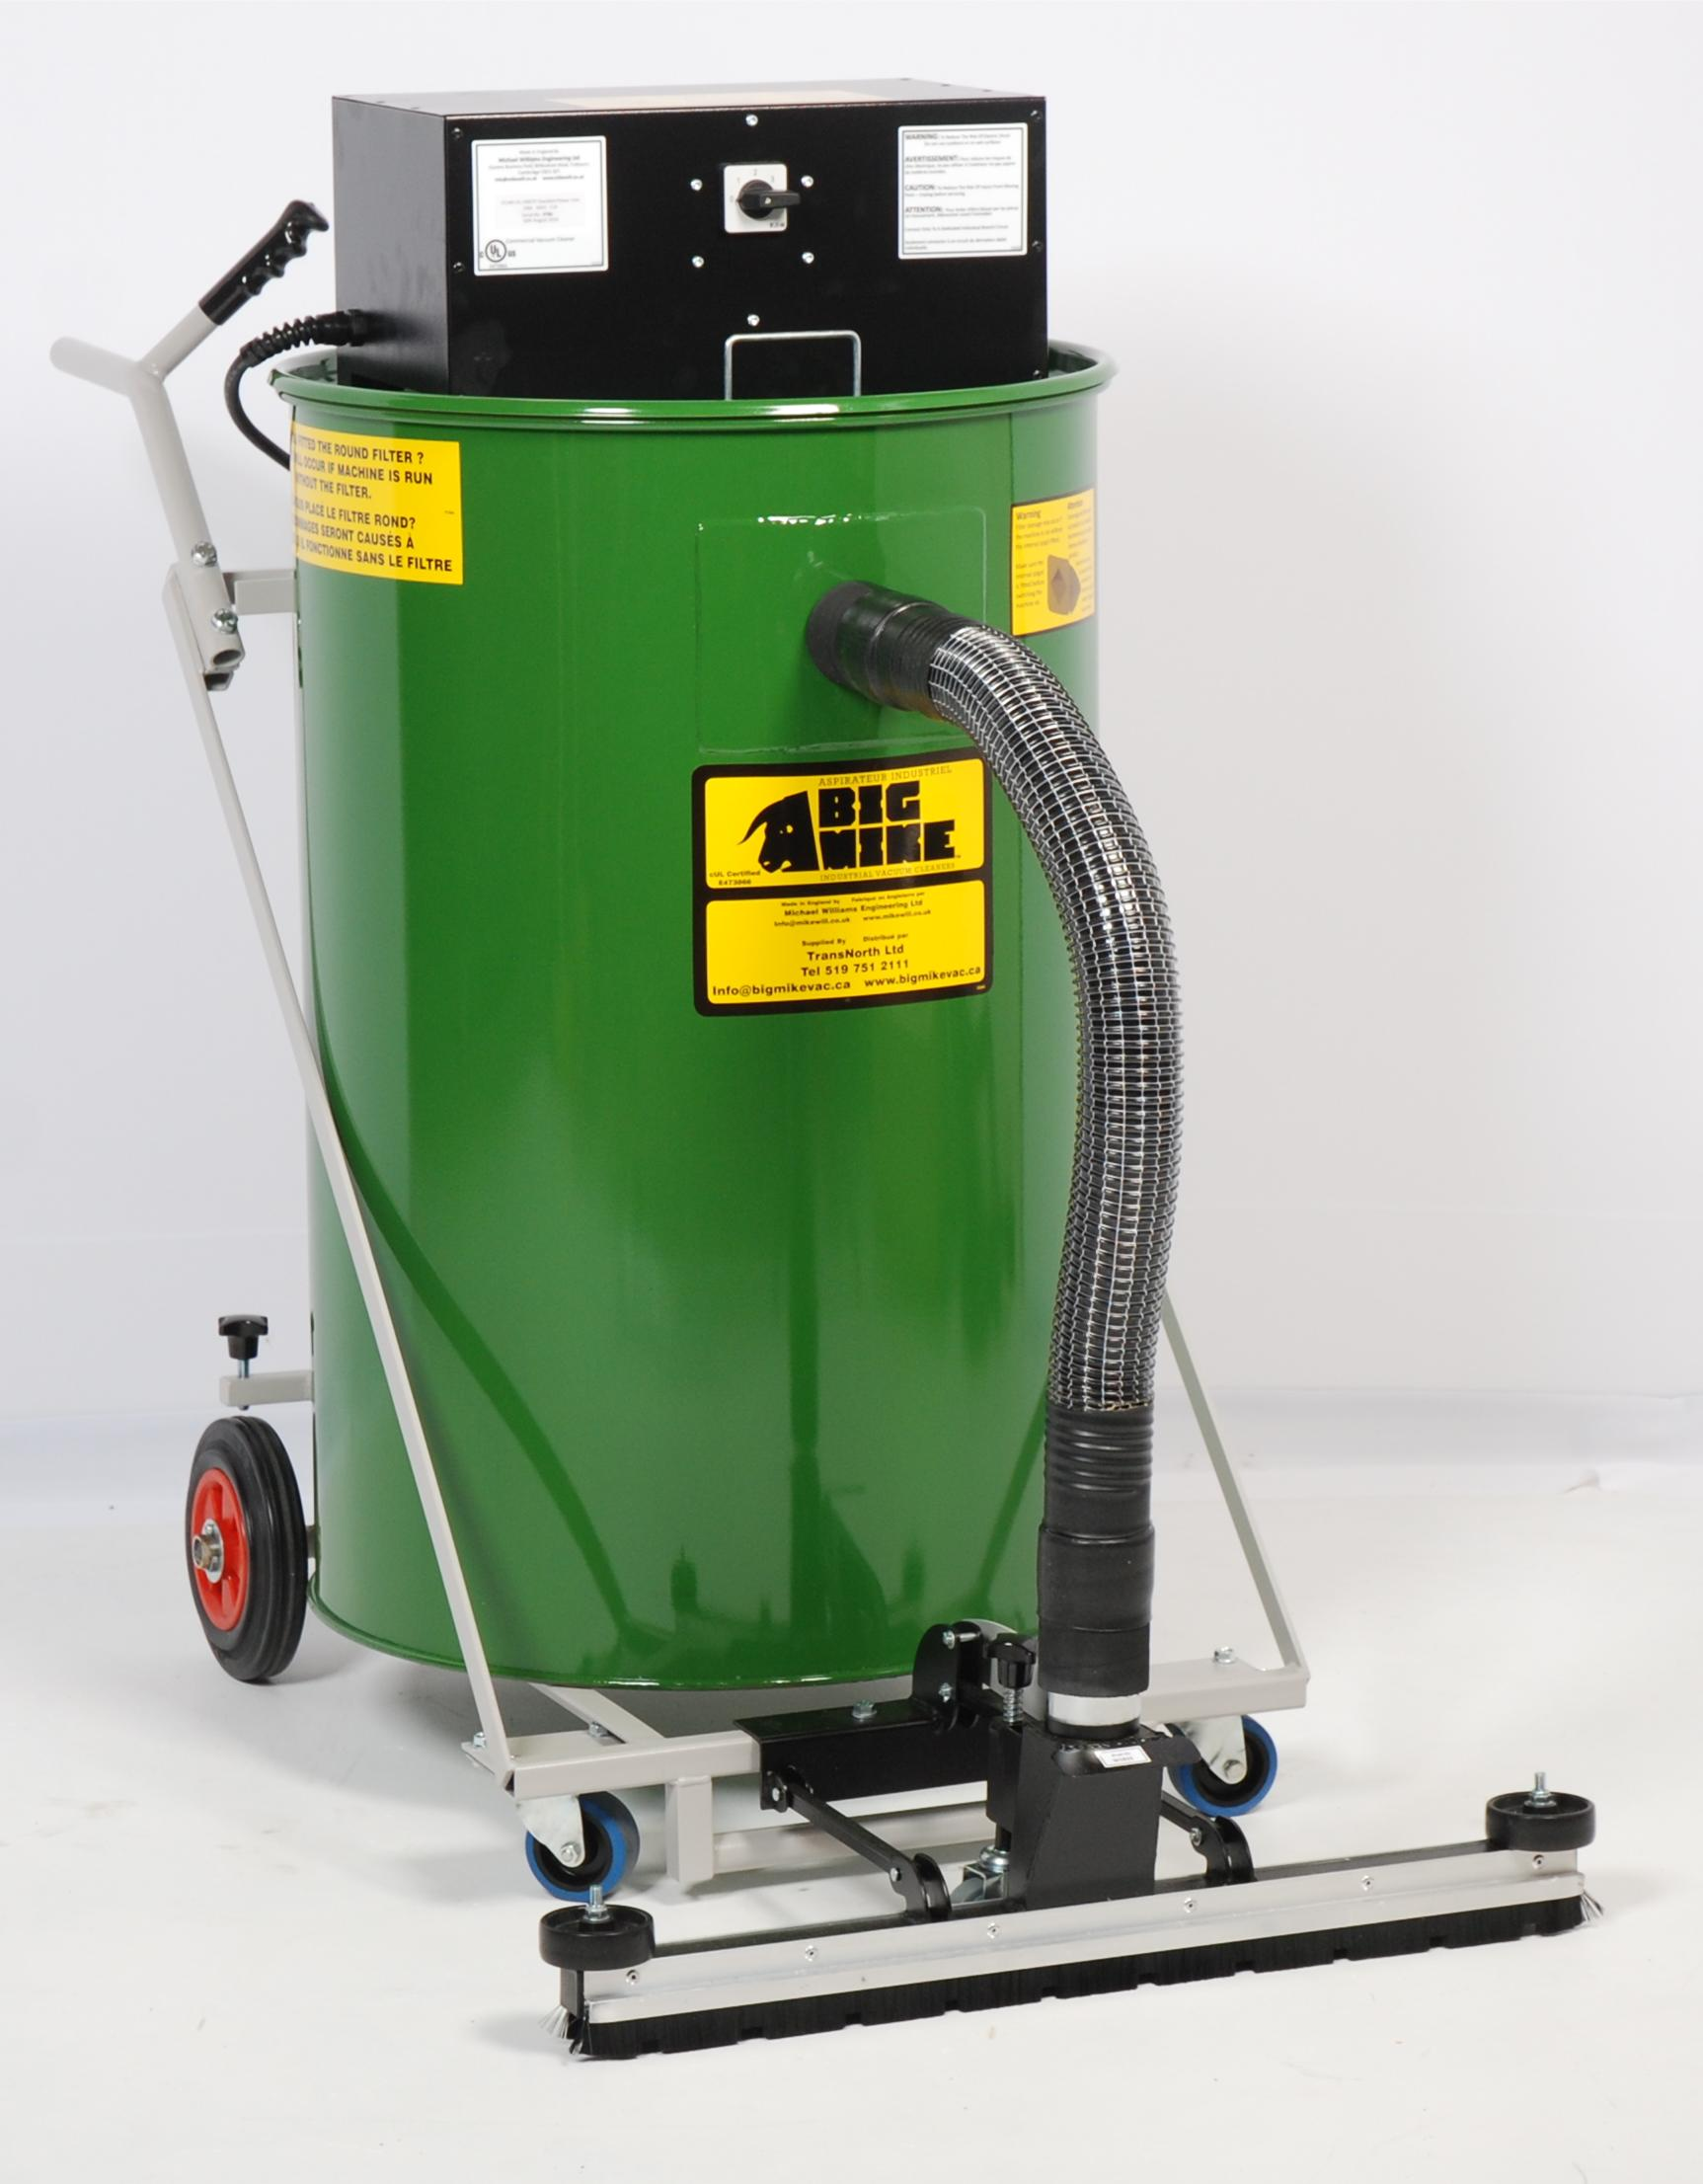 BIG MIKE Dry-Only Warehouseman Industrial Vacuum Right View